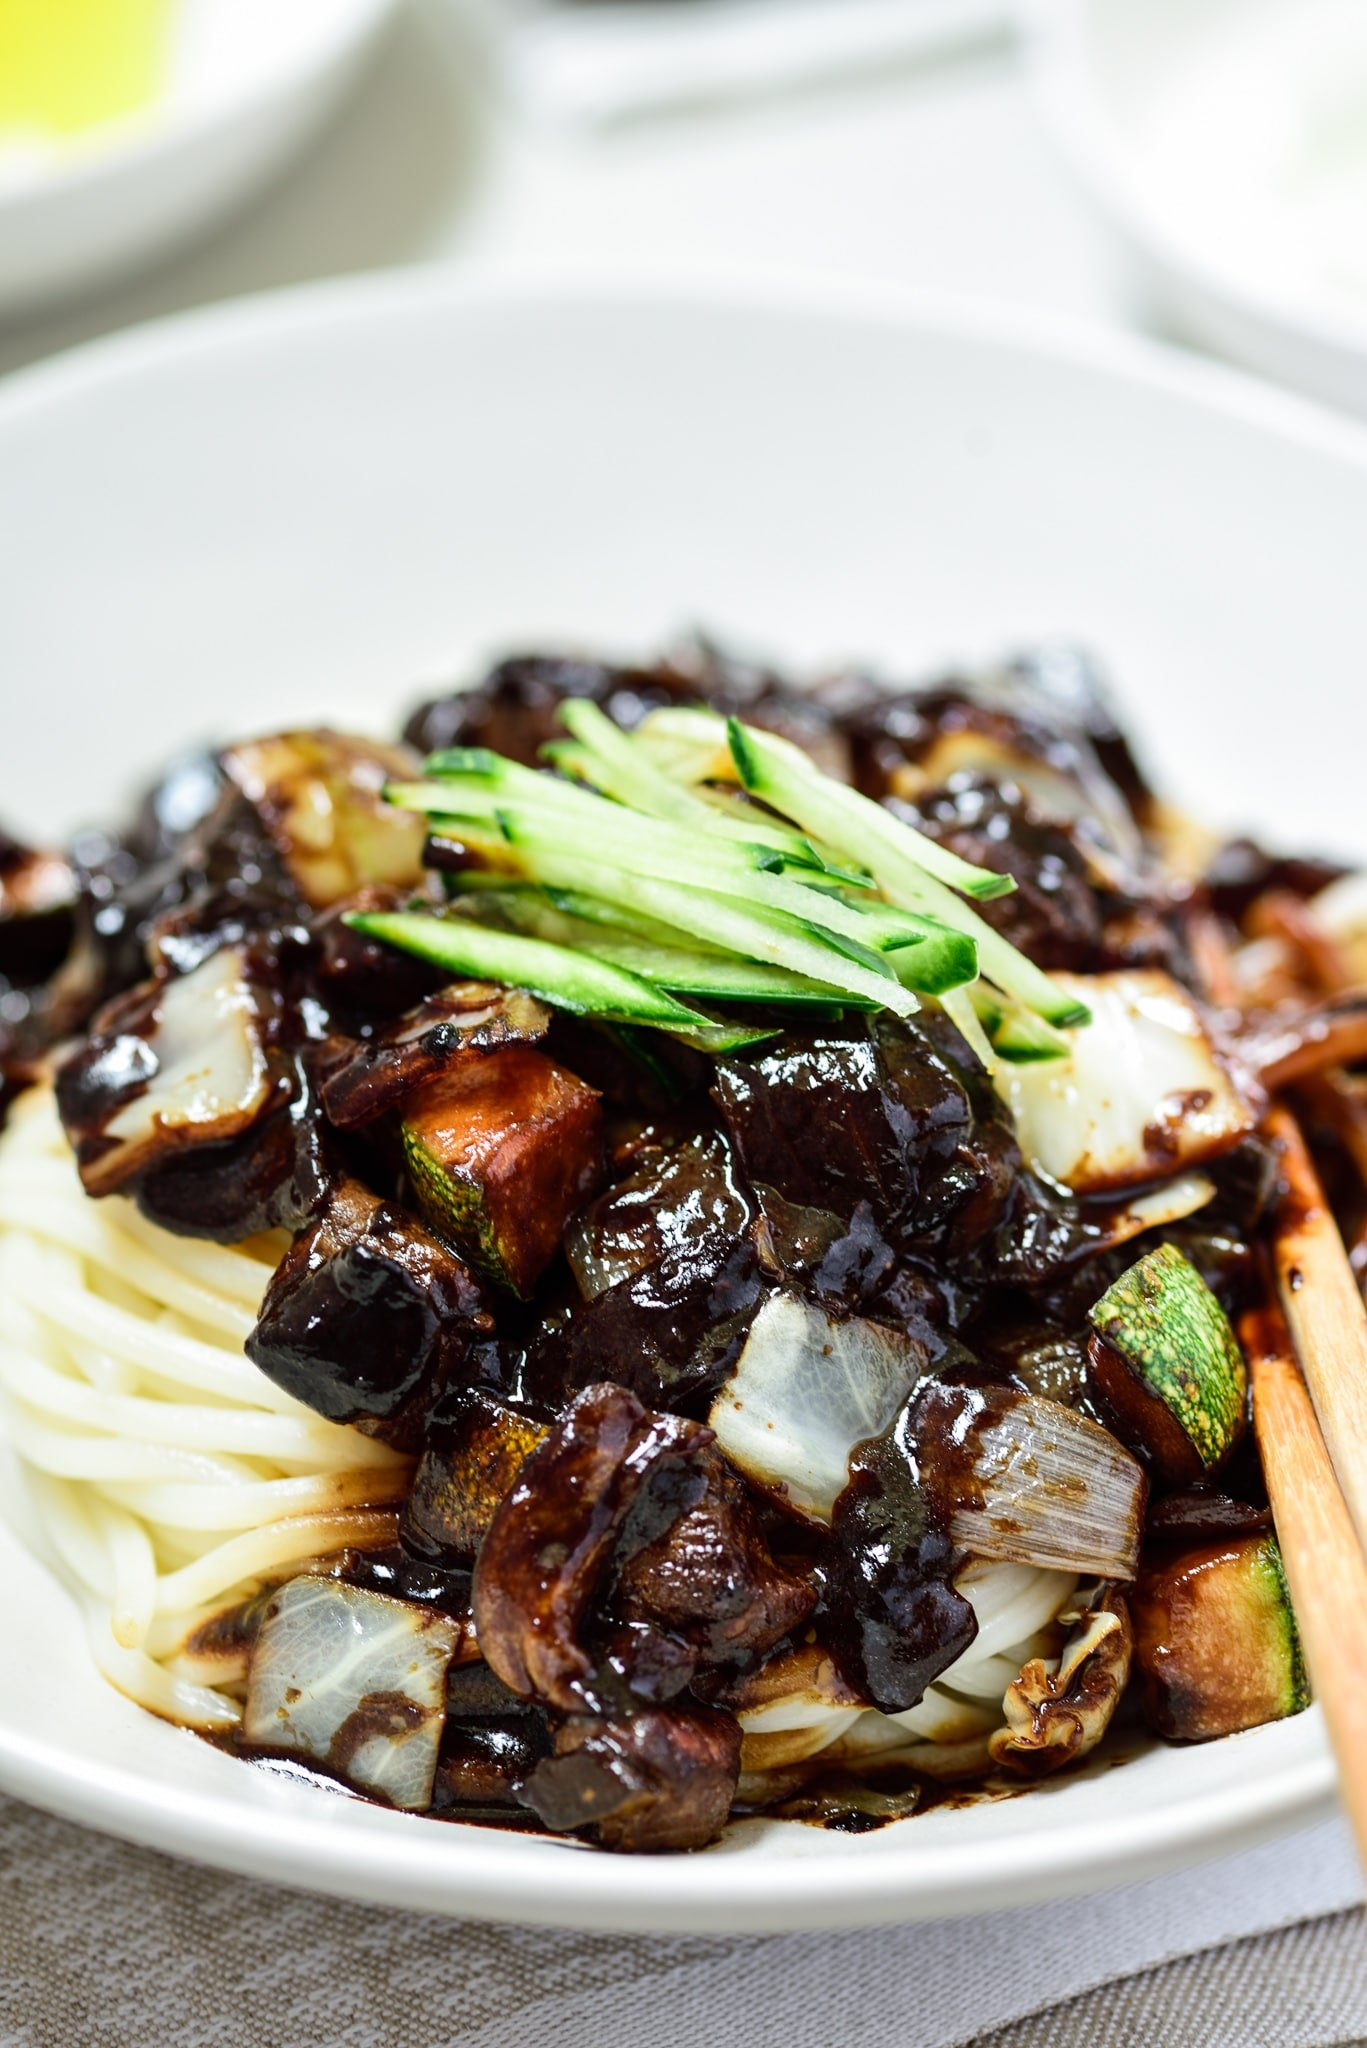 DSC1689 - Jajangmyeon (Noodles in Black Bean Sauce)